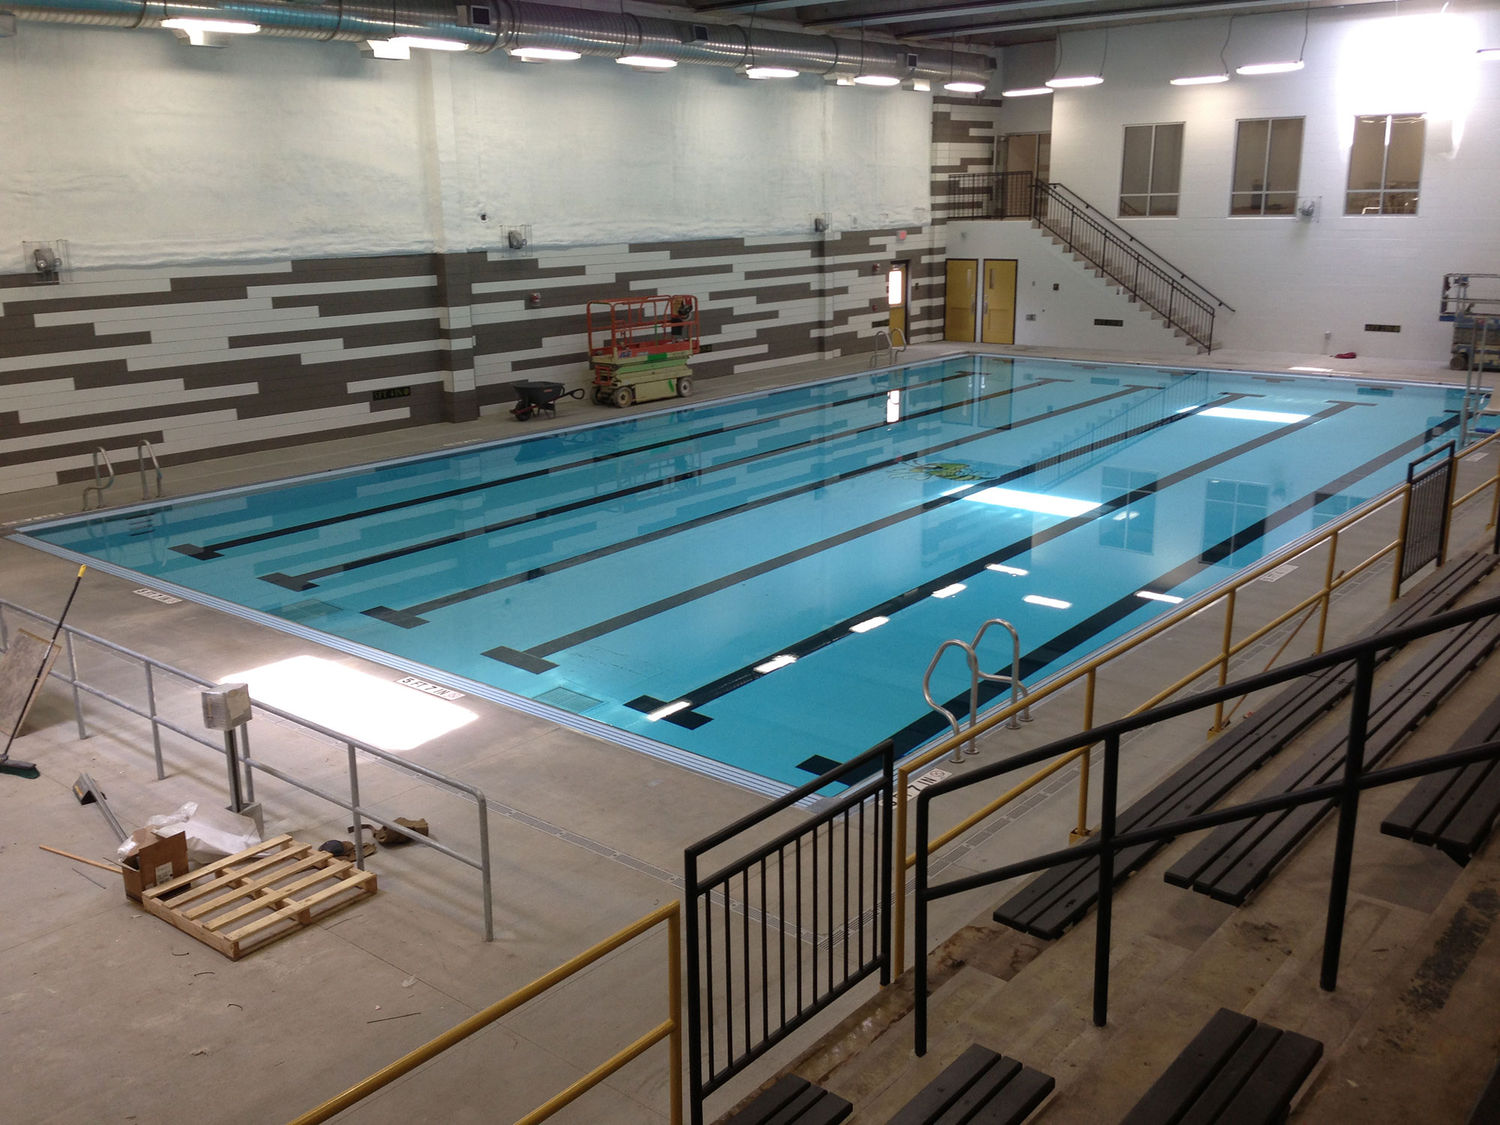 Central high school pool renovation louisville ky eh - University of louisville swimming pool ...